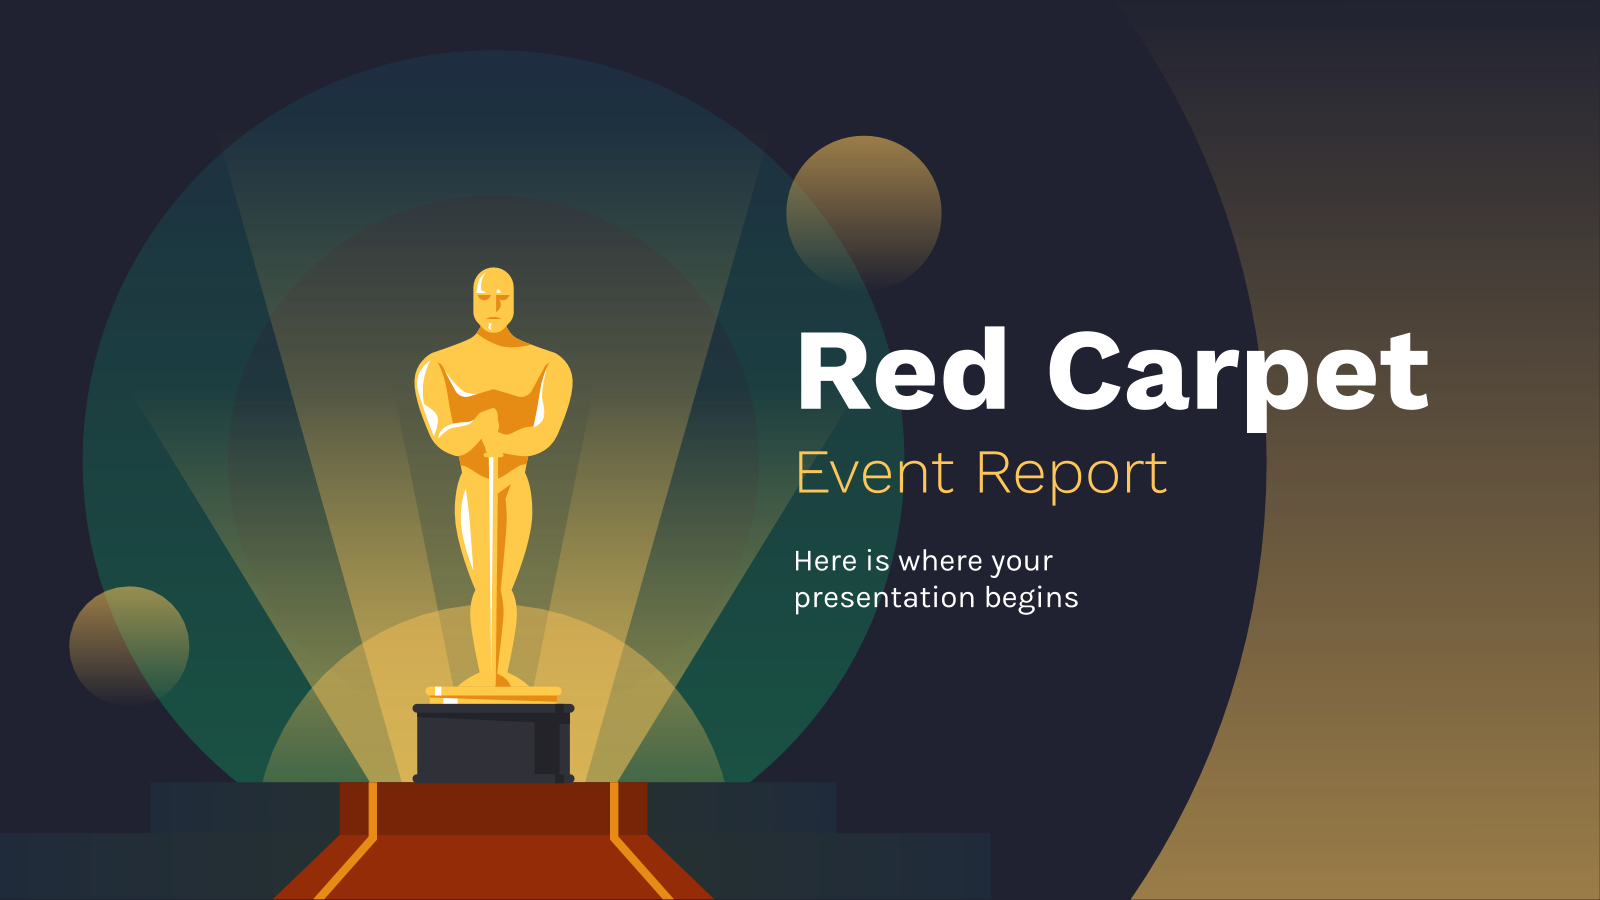 Red Carpet Event Report Google Slides Theme And Ppt Template